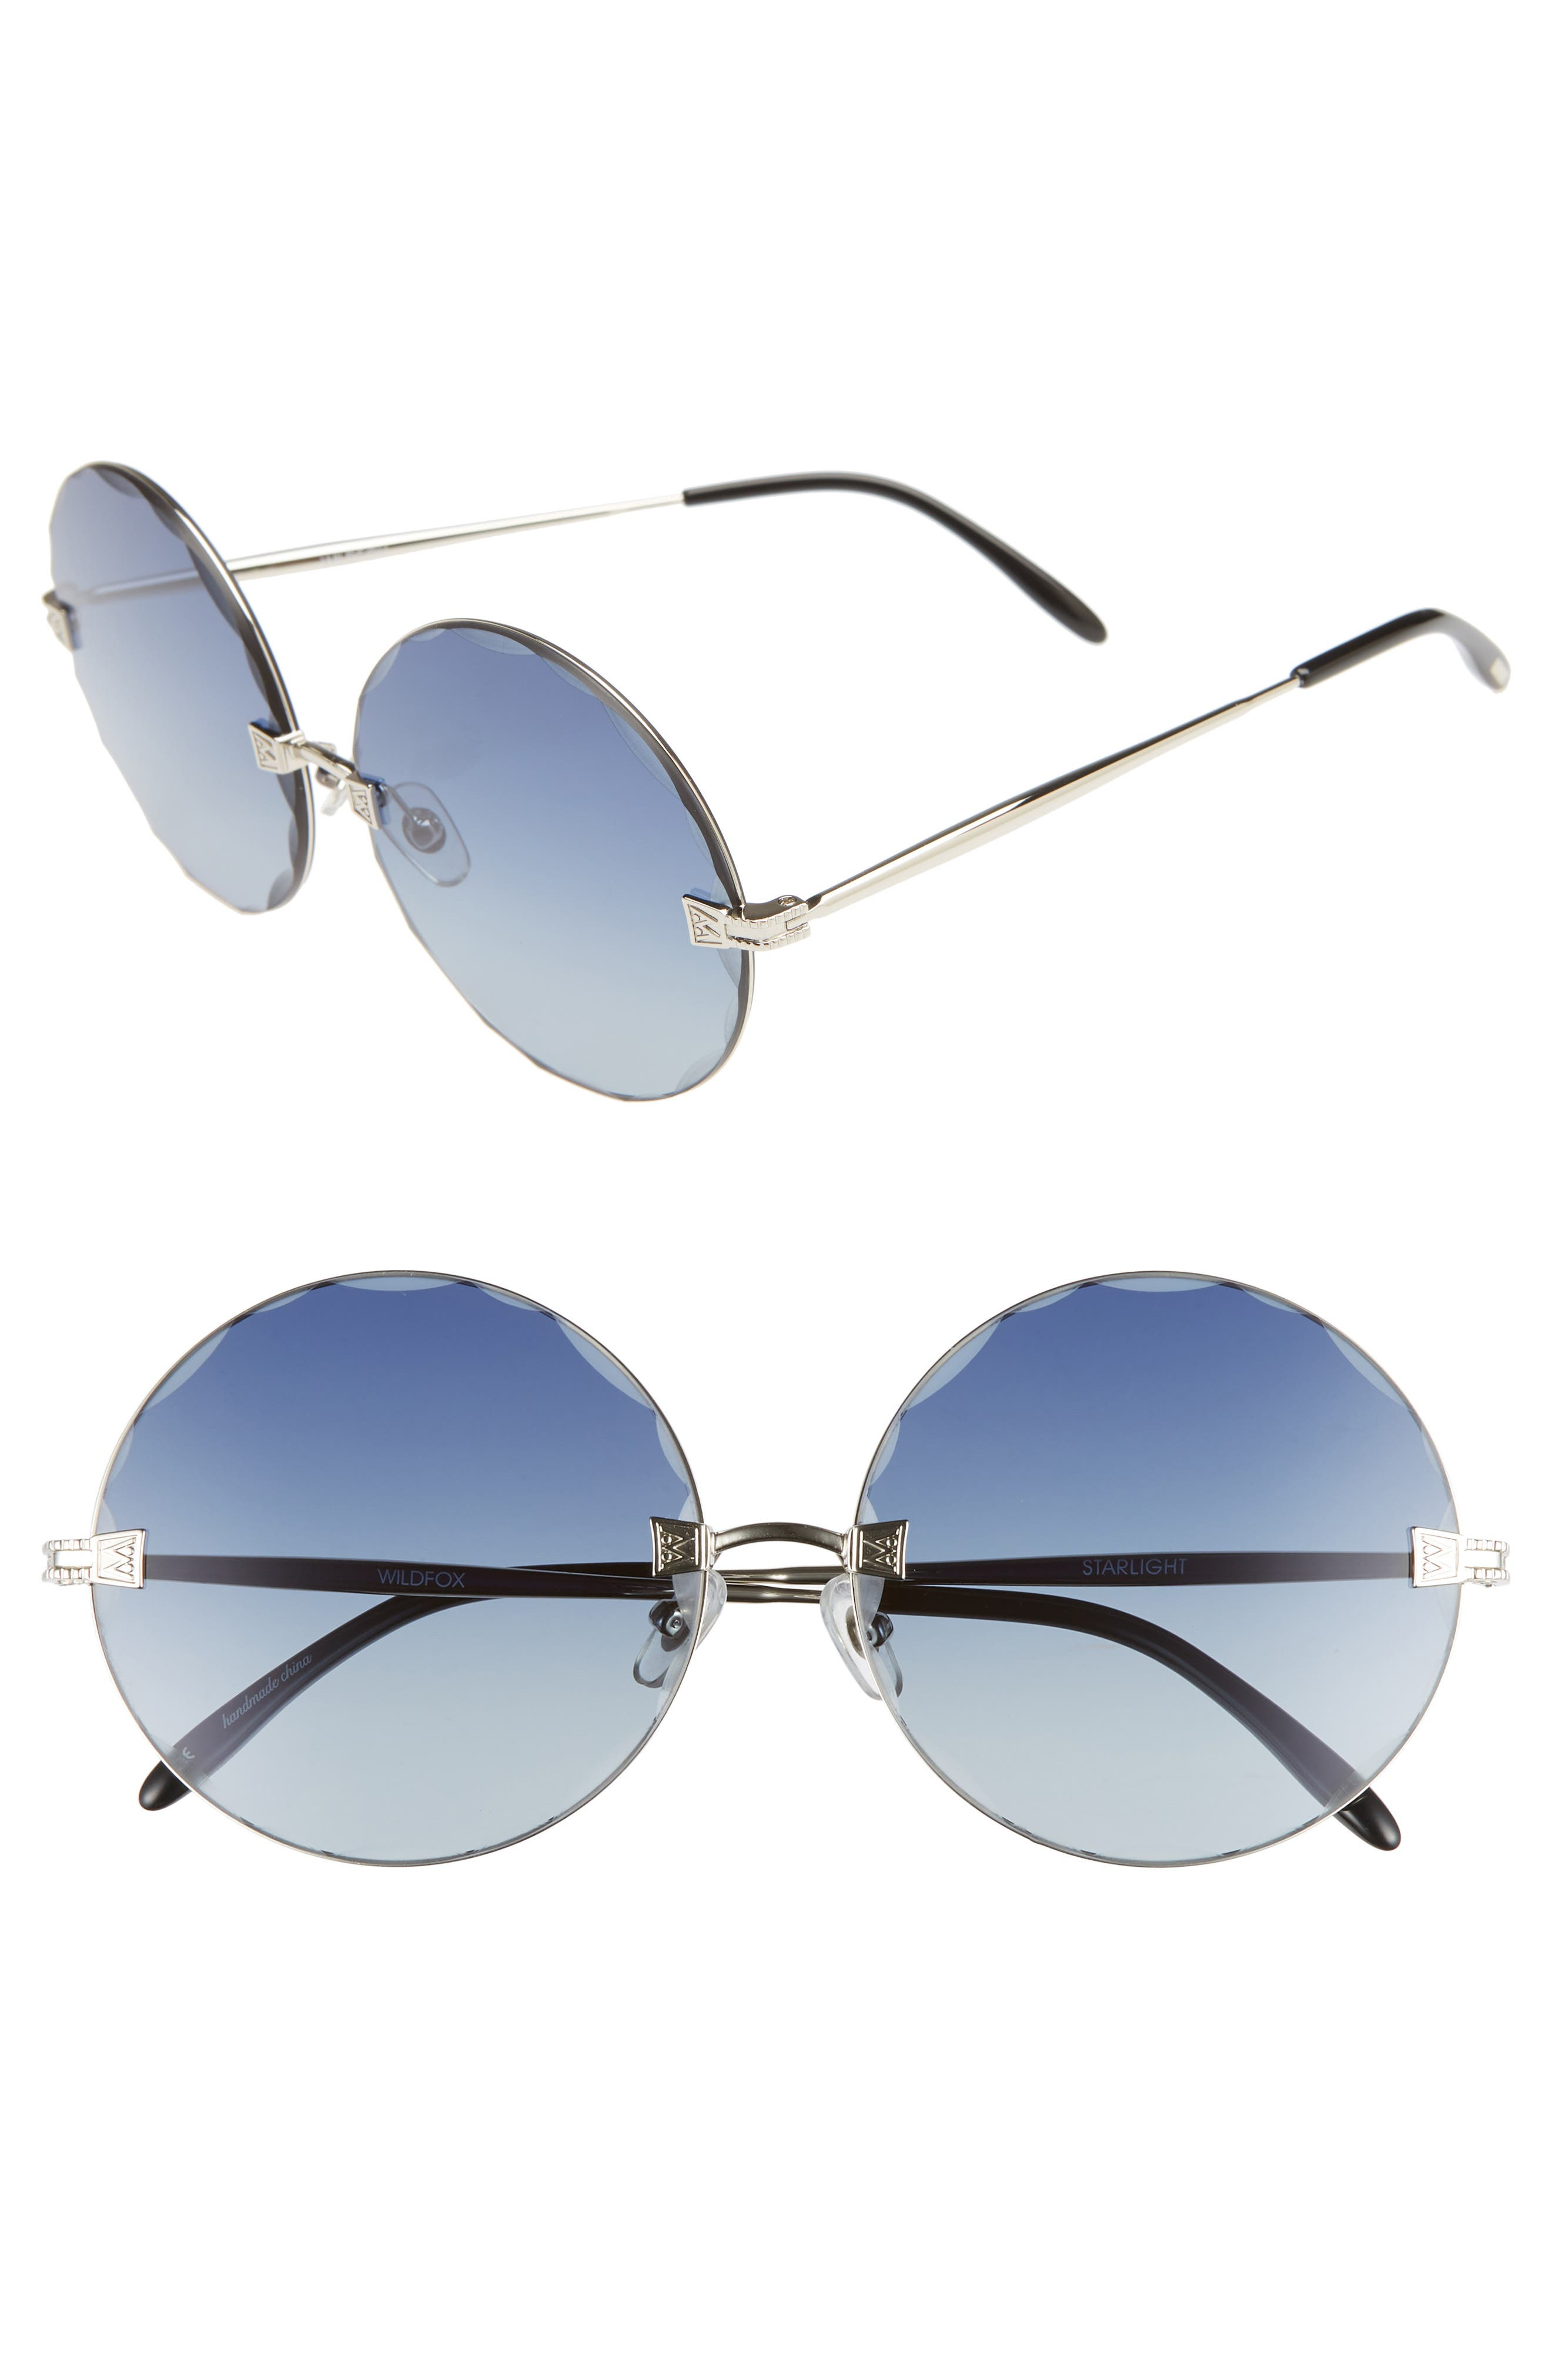 Starlight 62mm Oversize Round Sunglasses,                             Main thumbnail 1, color,                             040